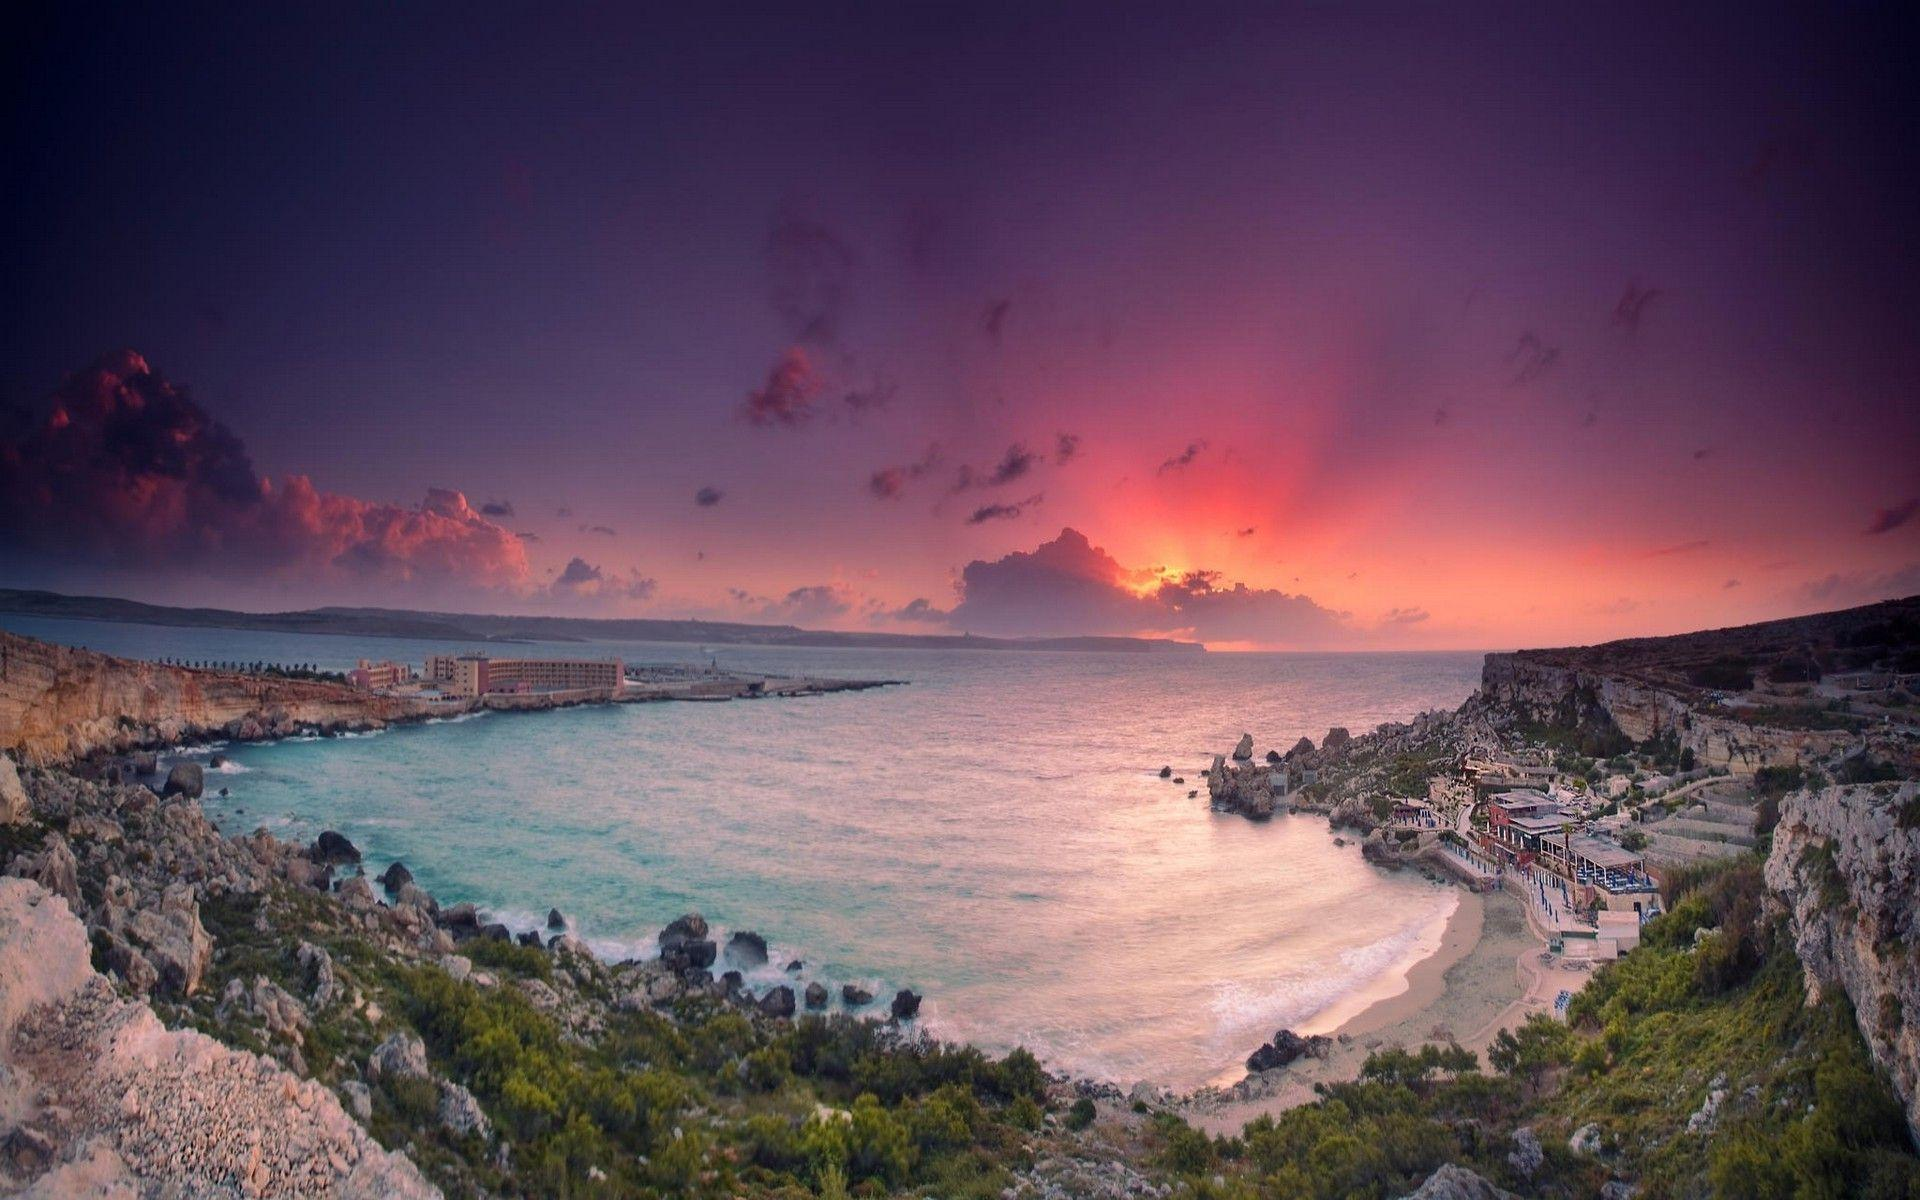 nature, Landscape, Beach, Sea, Vacations, Sunset, Cliff, Malta ...